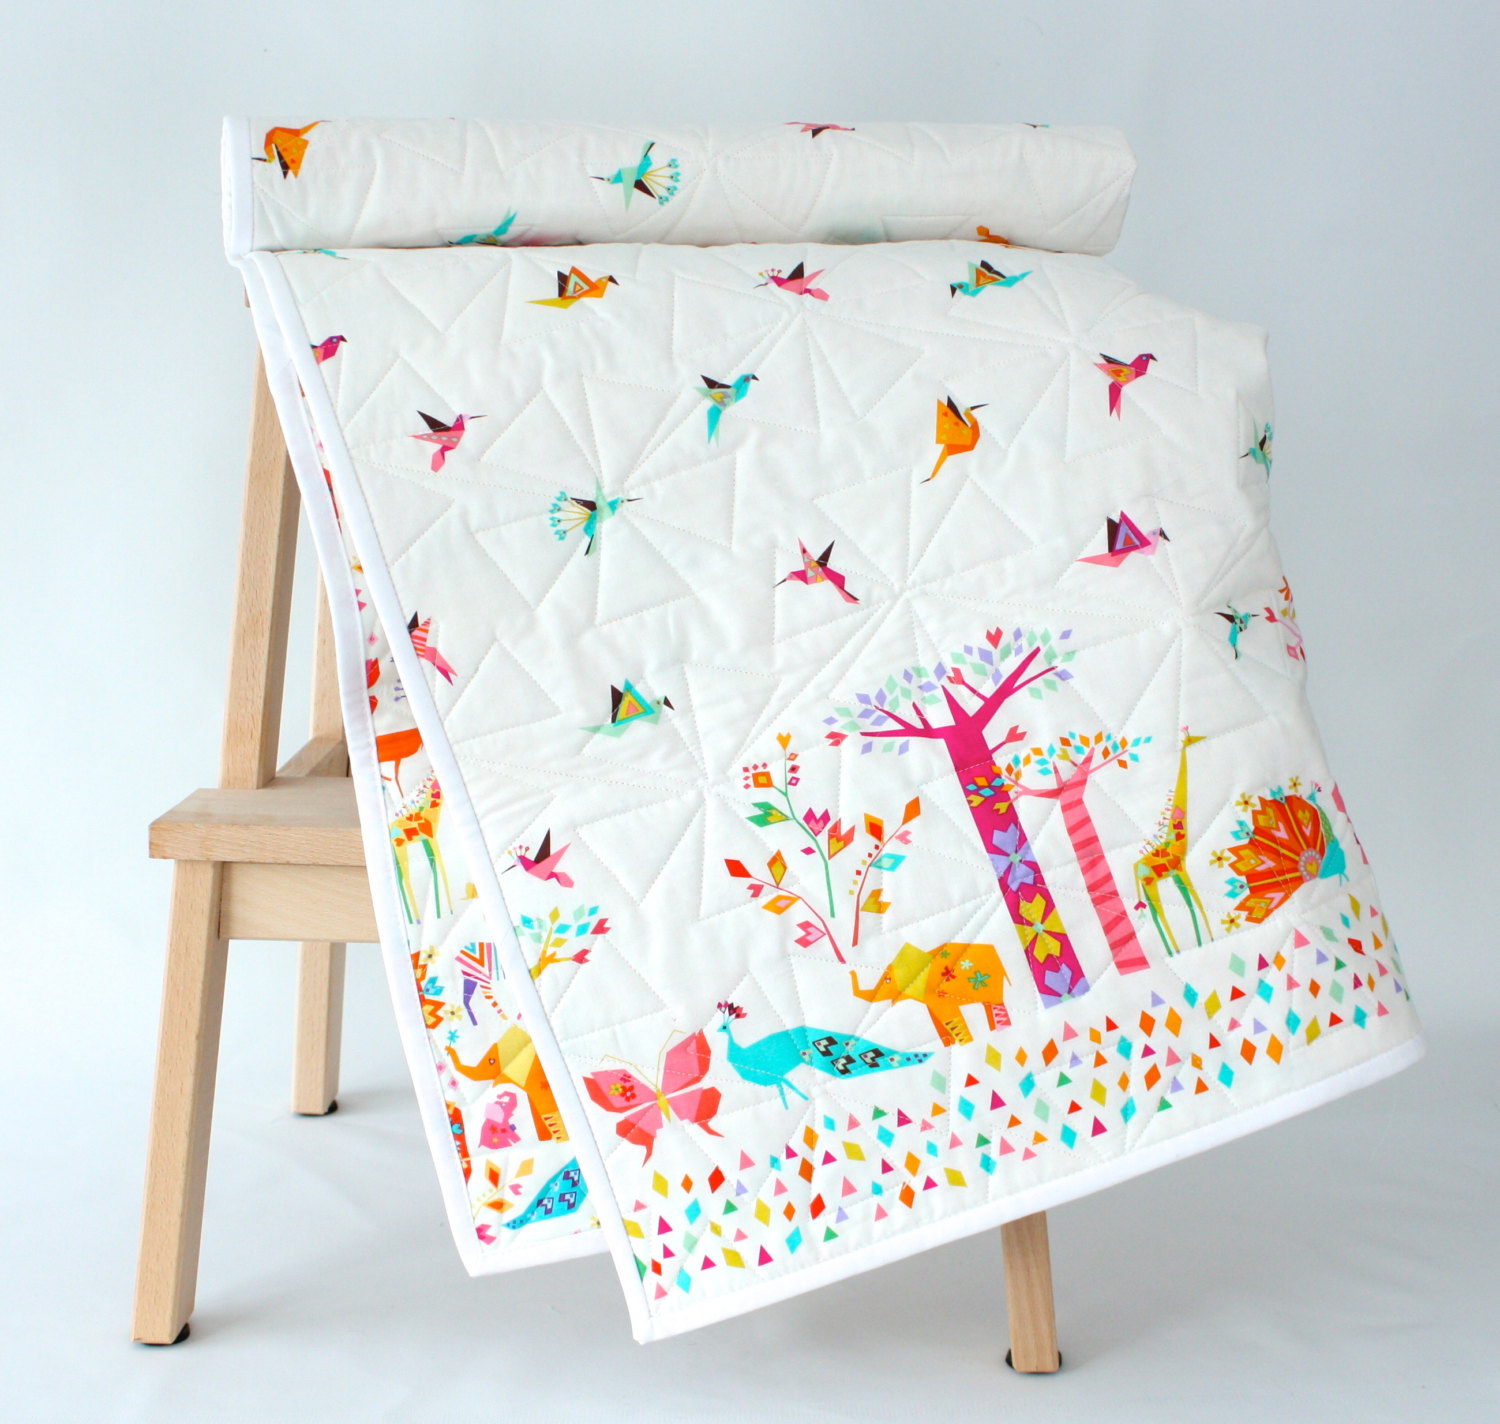 Origami Cranes and Animals Modern Baby Quilt